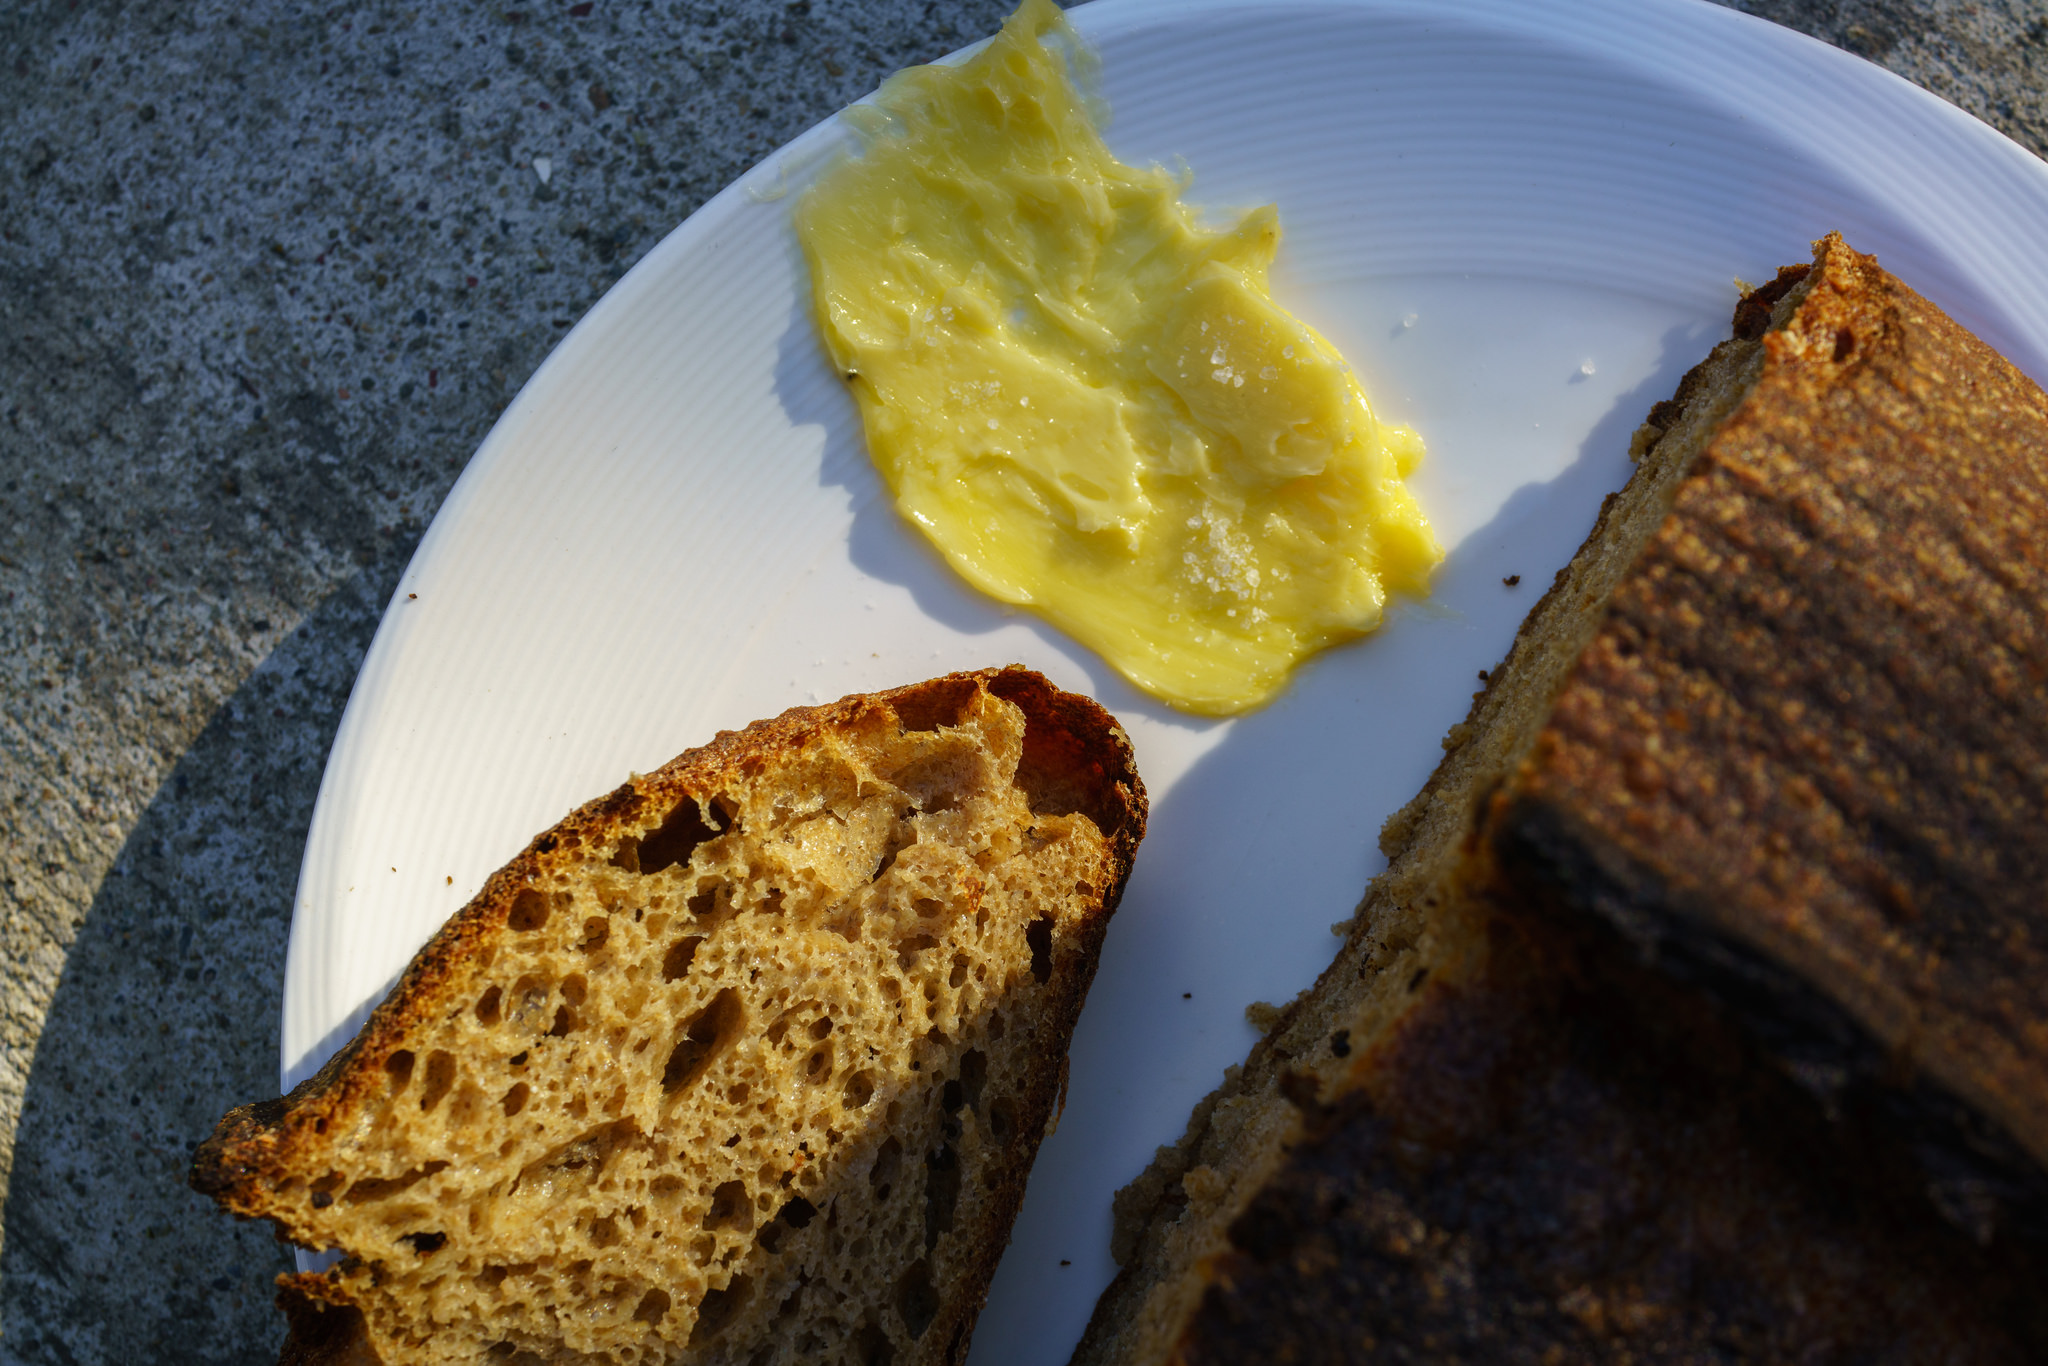 Josey Baker's Country Bread with Straus Creamery's 85% butterfat butter (look at its color!)